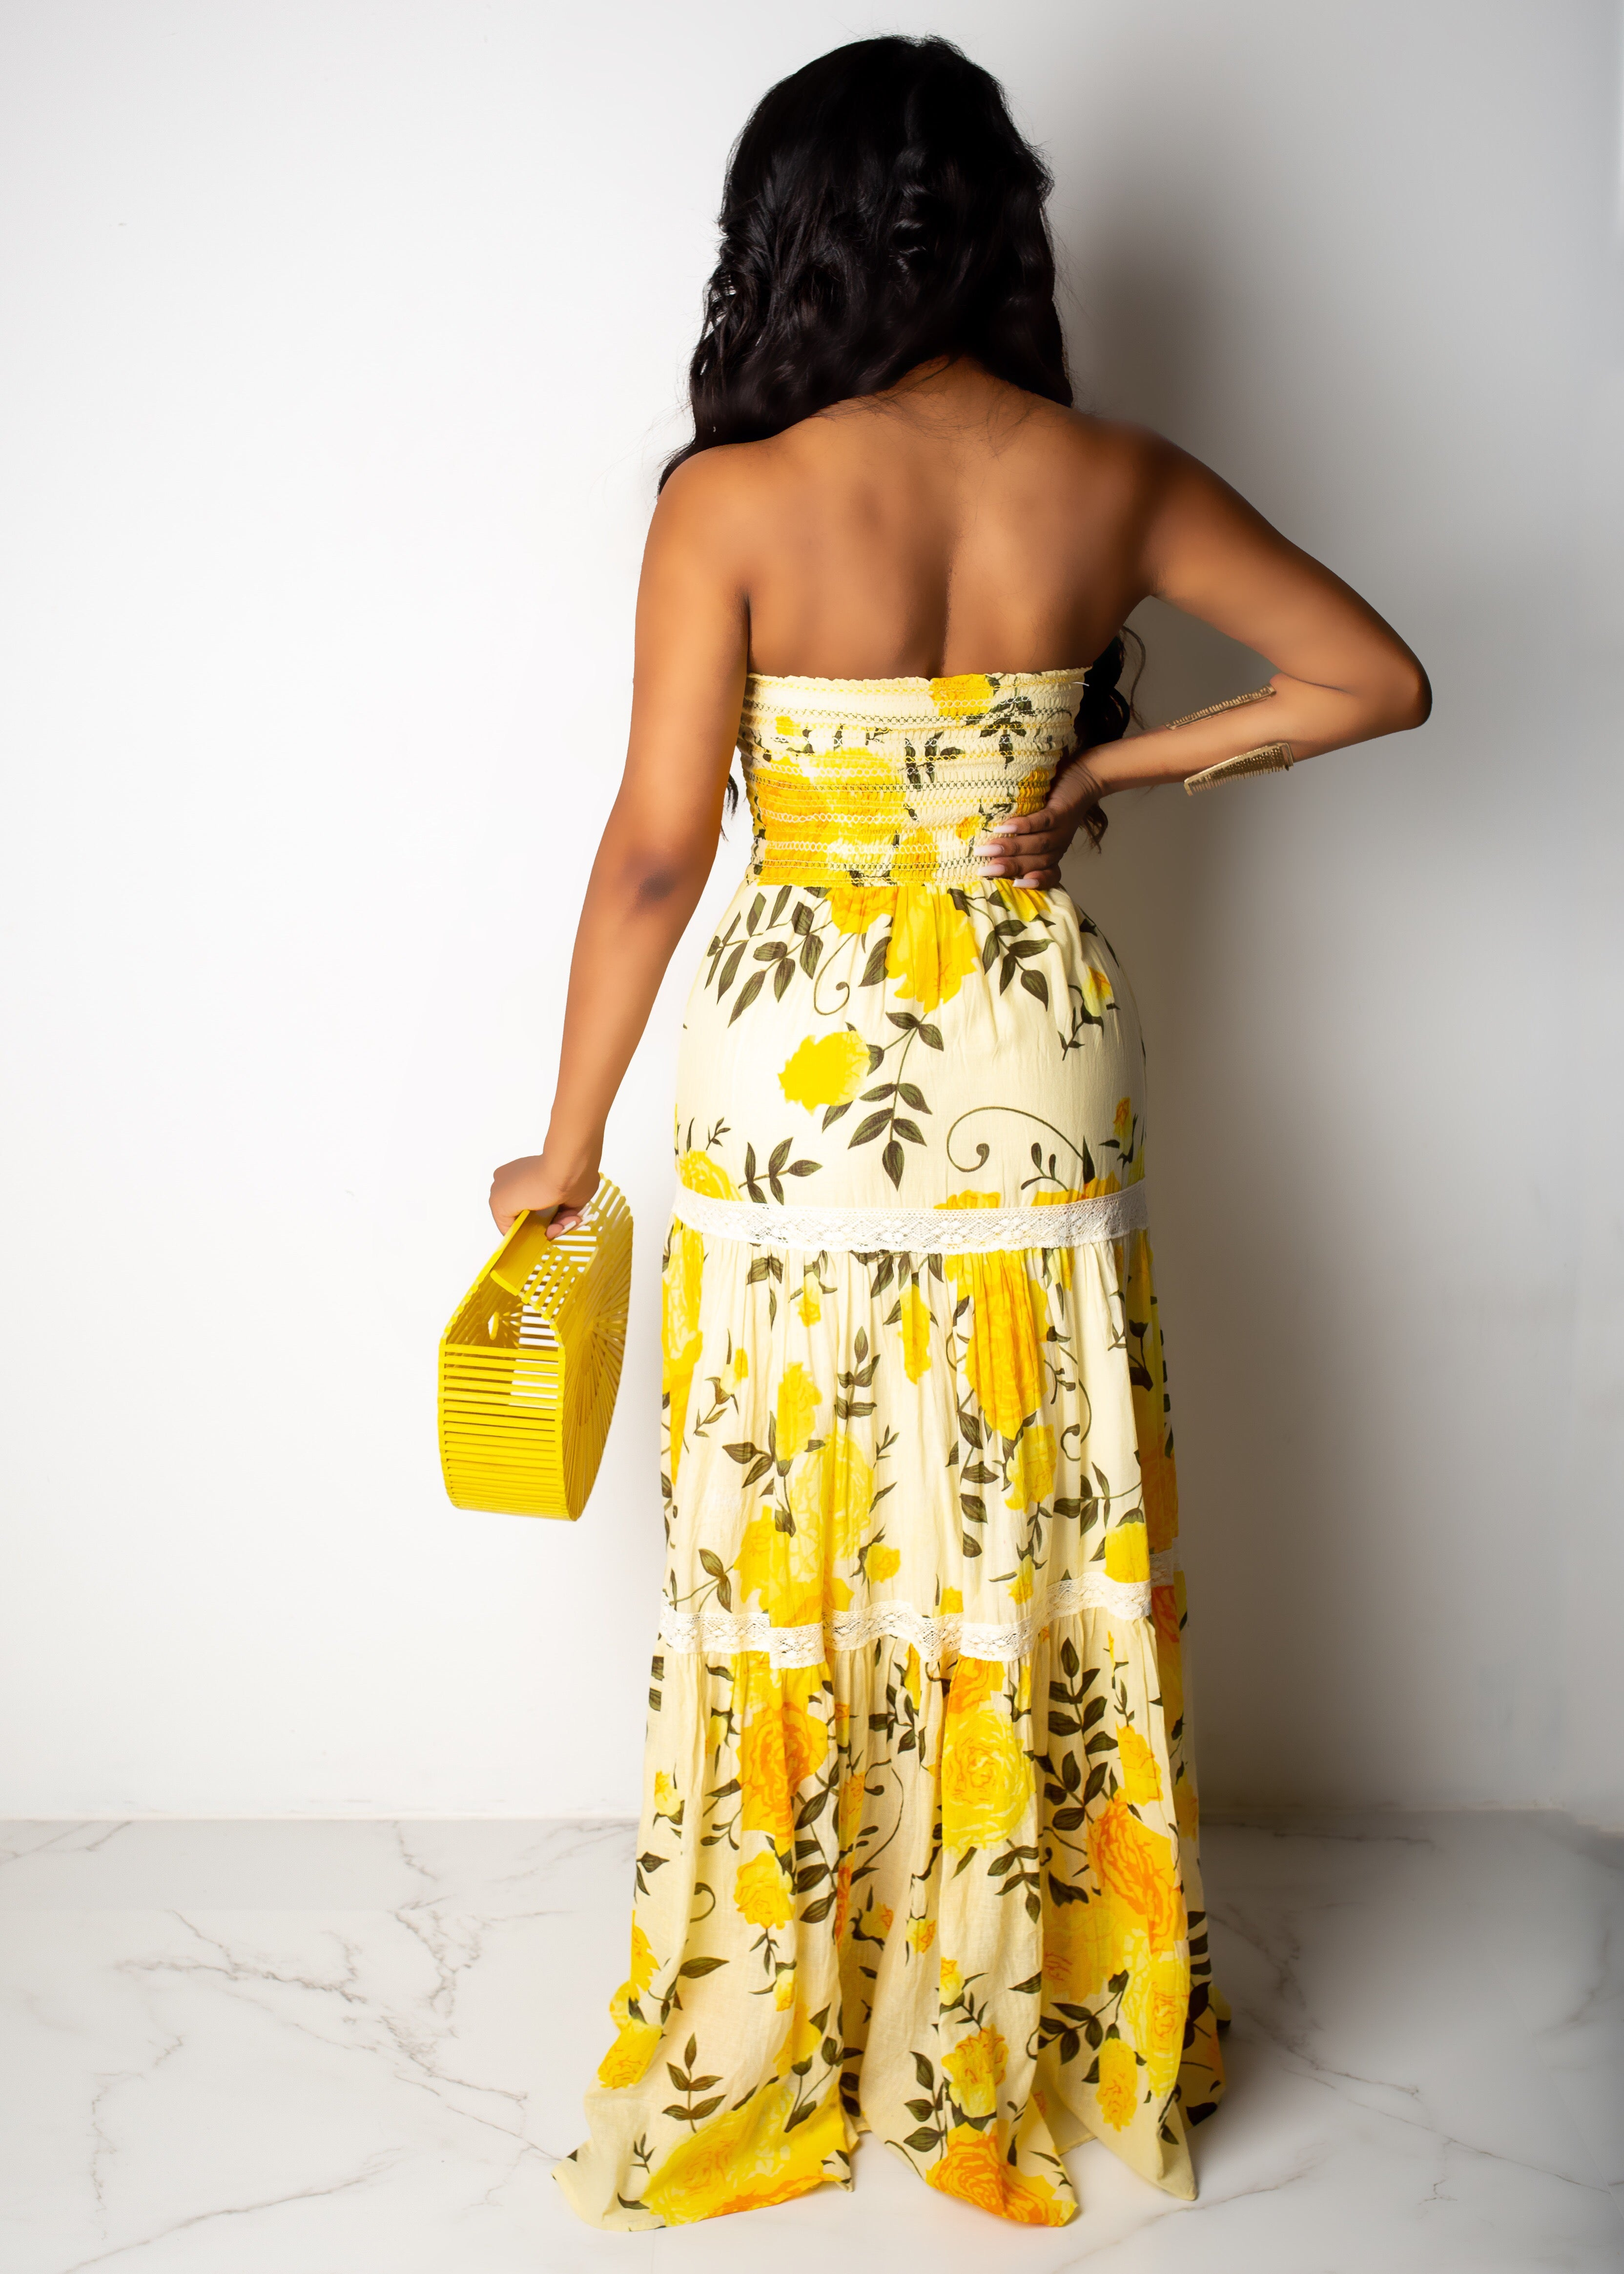 Bringing My Own Sunshine Maxi Dress